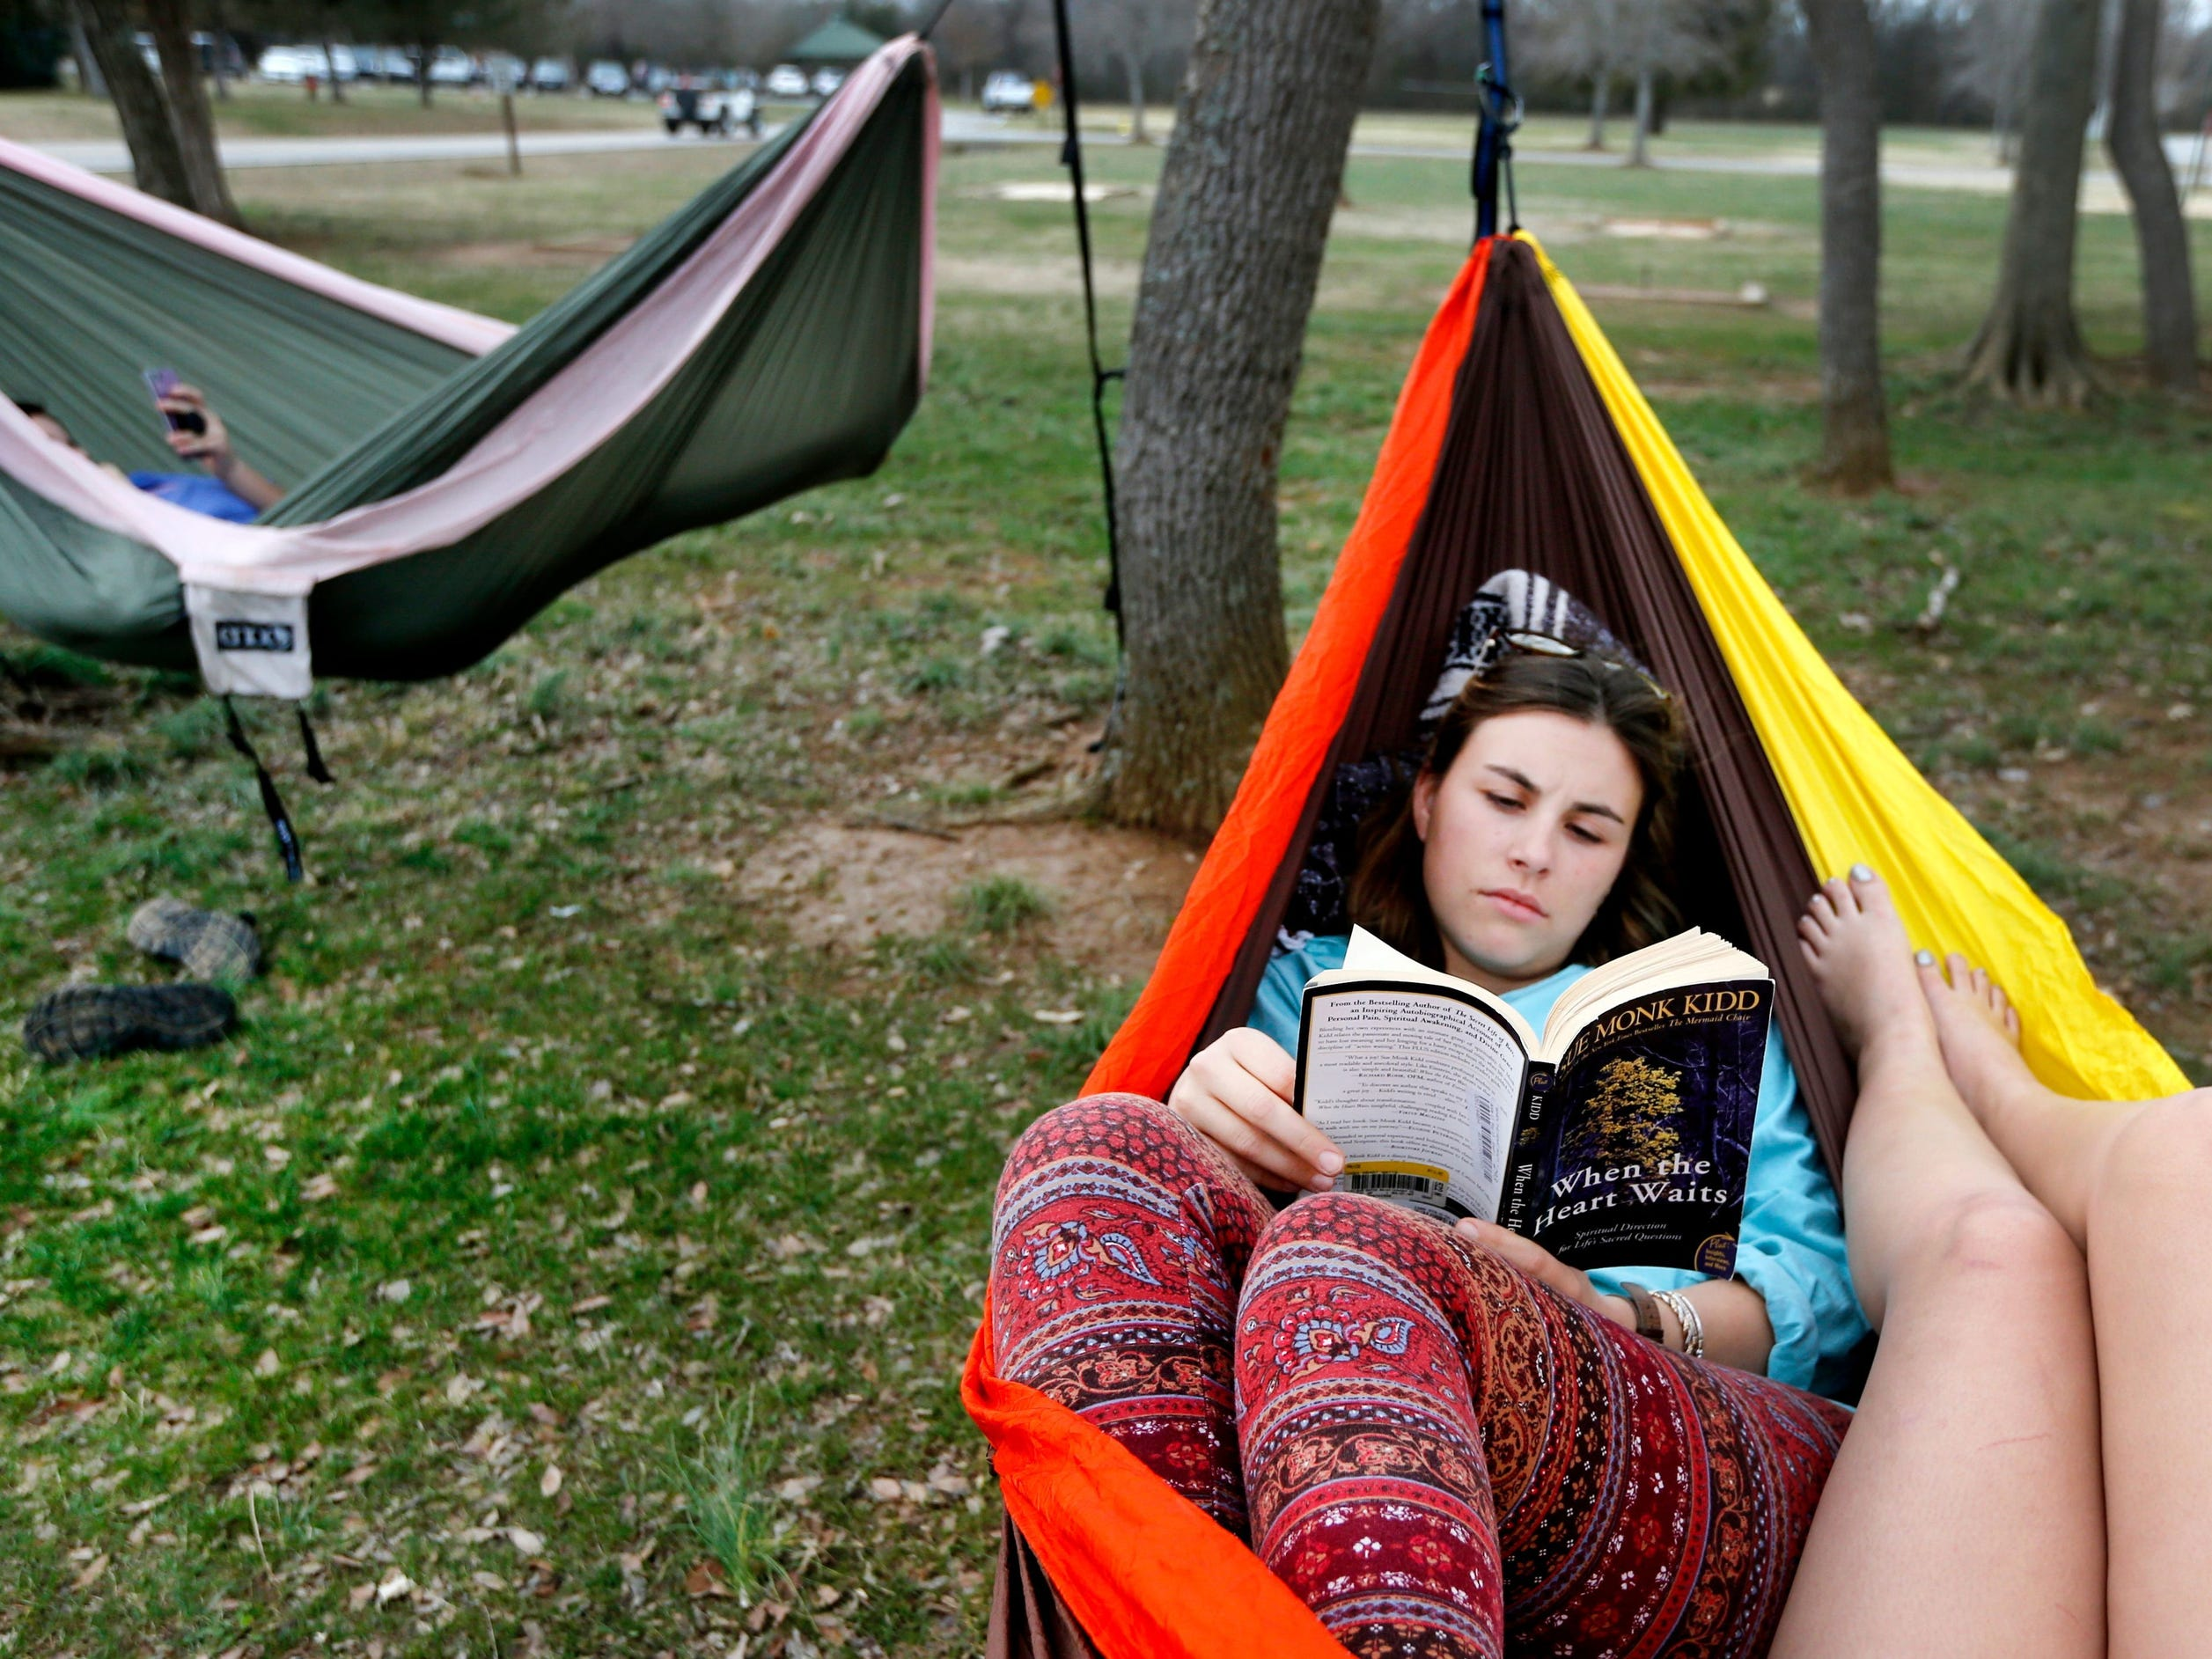 "Bethany Mohr, 23, reads ""When the Heart Waits"" by Sue Monk Kidd in a hammock with her sister Grace Dawson, 16, as her other sister Bella Dawson, 13 reads on her phone in another hammock in Barfield Crescent Park, in Murfreesboro, on Monday, Feb. 19, 2018. The 3 had a picnic in the park before lounging in hammocks enjoying the unusual warm weather."